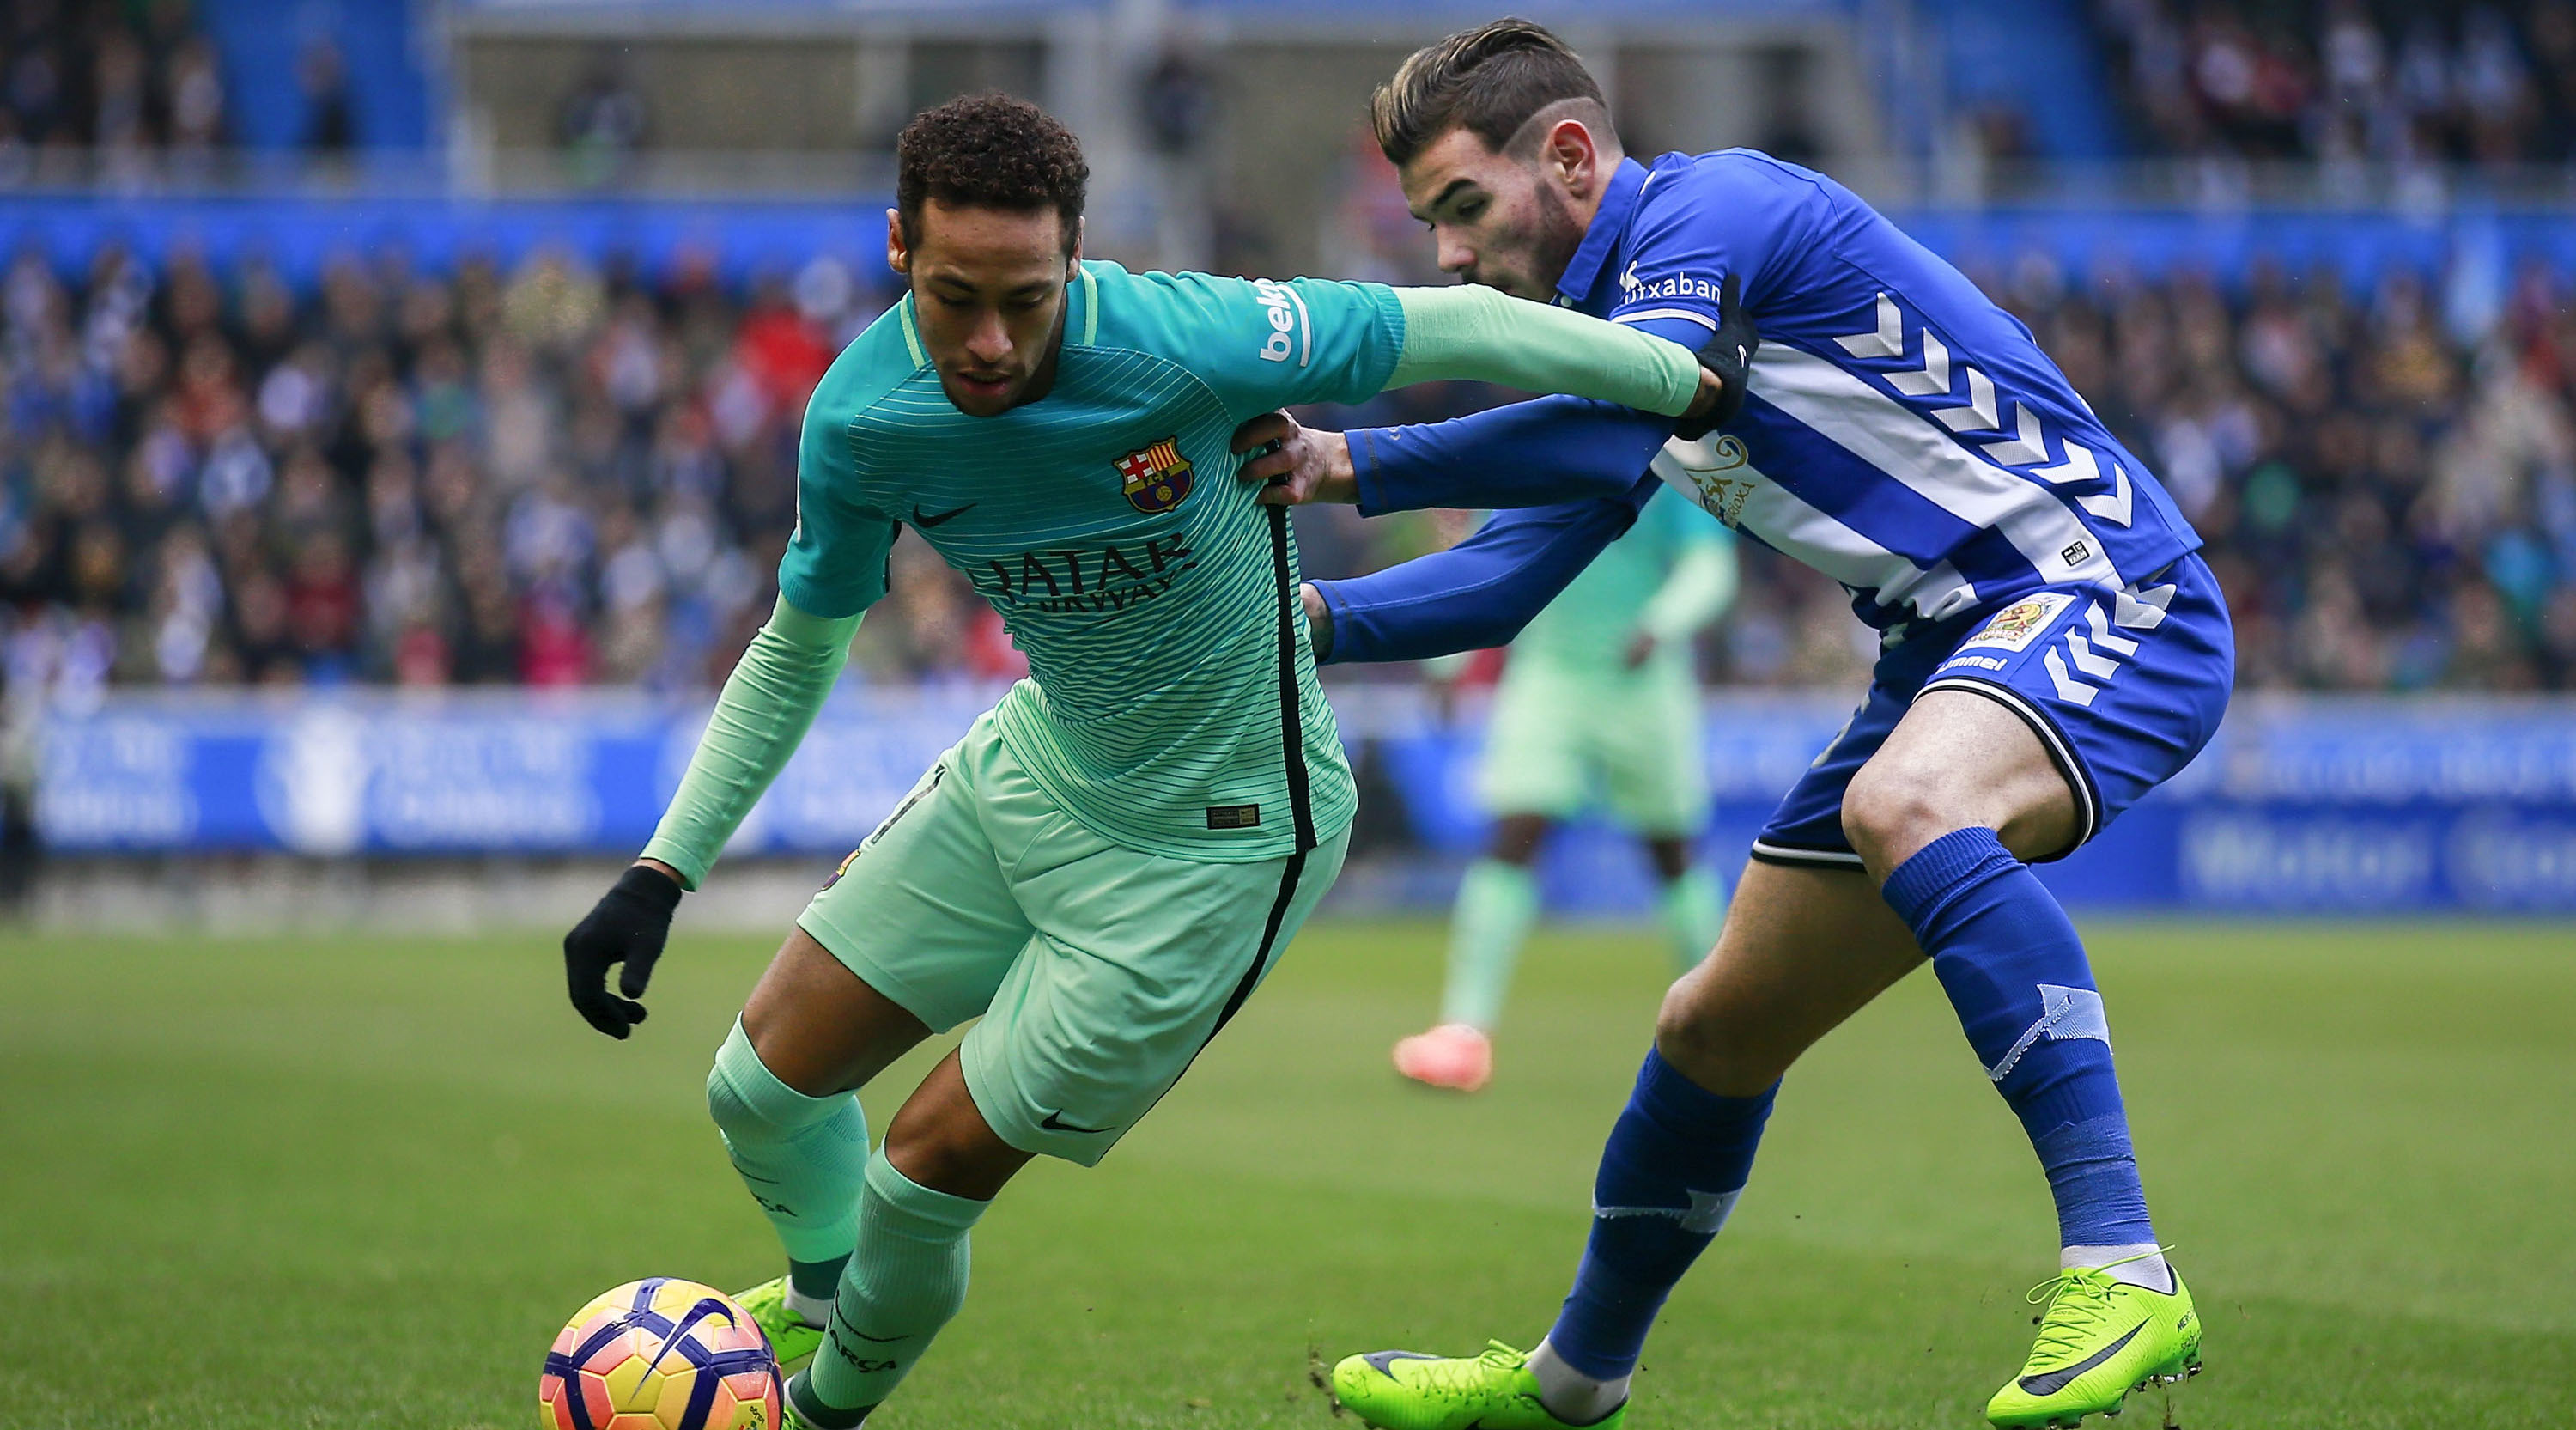 VITORIA-GASTEIZ, SPAIN - FEBRUARY 11: Neymar JR. (L) of FC Barcelona competes for the ball with Theo Hernandez (R) of Deportivo Alaves during the La Liga match between Deportivo Alaves and FC Barcelona at Estadio de Mendizorroza on February 11, 2017 in Vitoria-Gasteiz, Spain. (Photo by Gonzalo Arroyo Moreno/Getty Images)